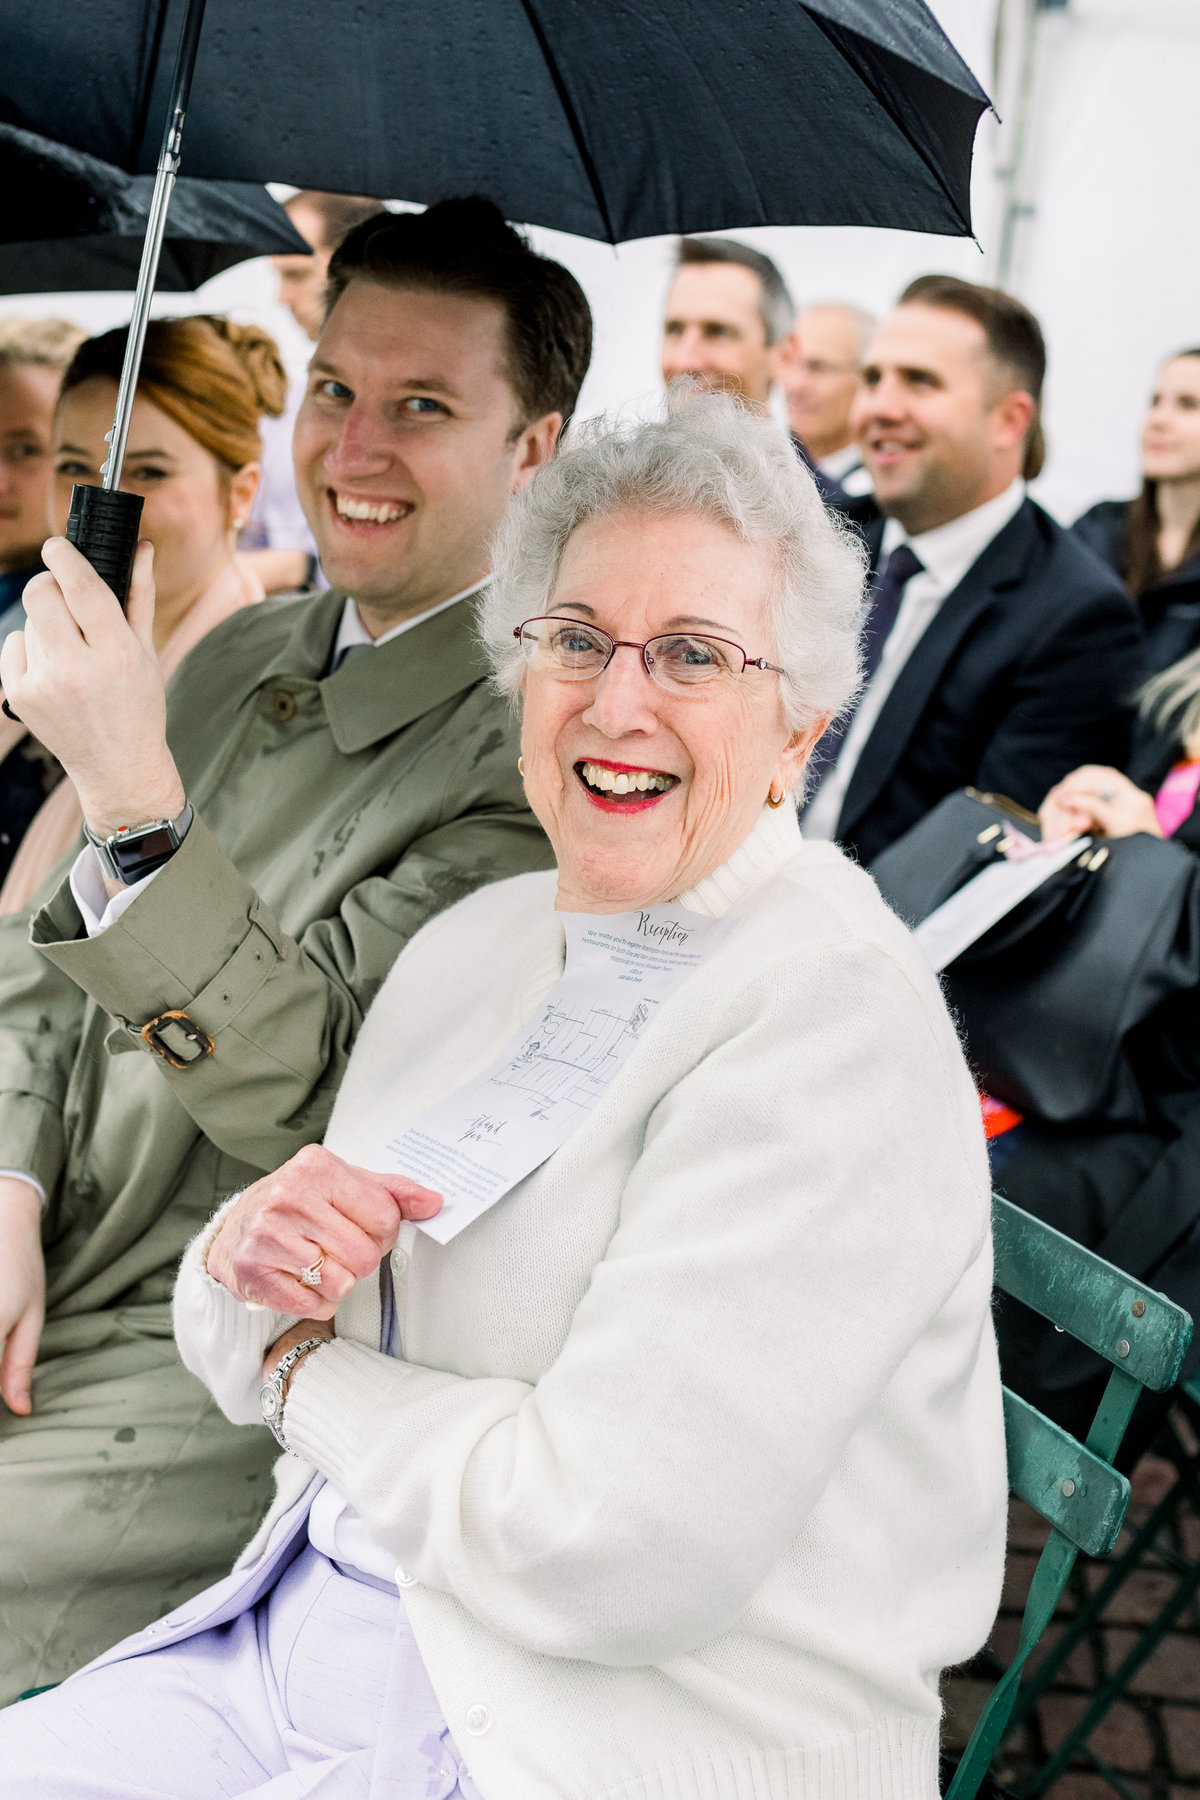 Grandmother Smiles at the camera right before a wedding ceremony in the rain in Cincinnati, Ohio